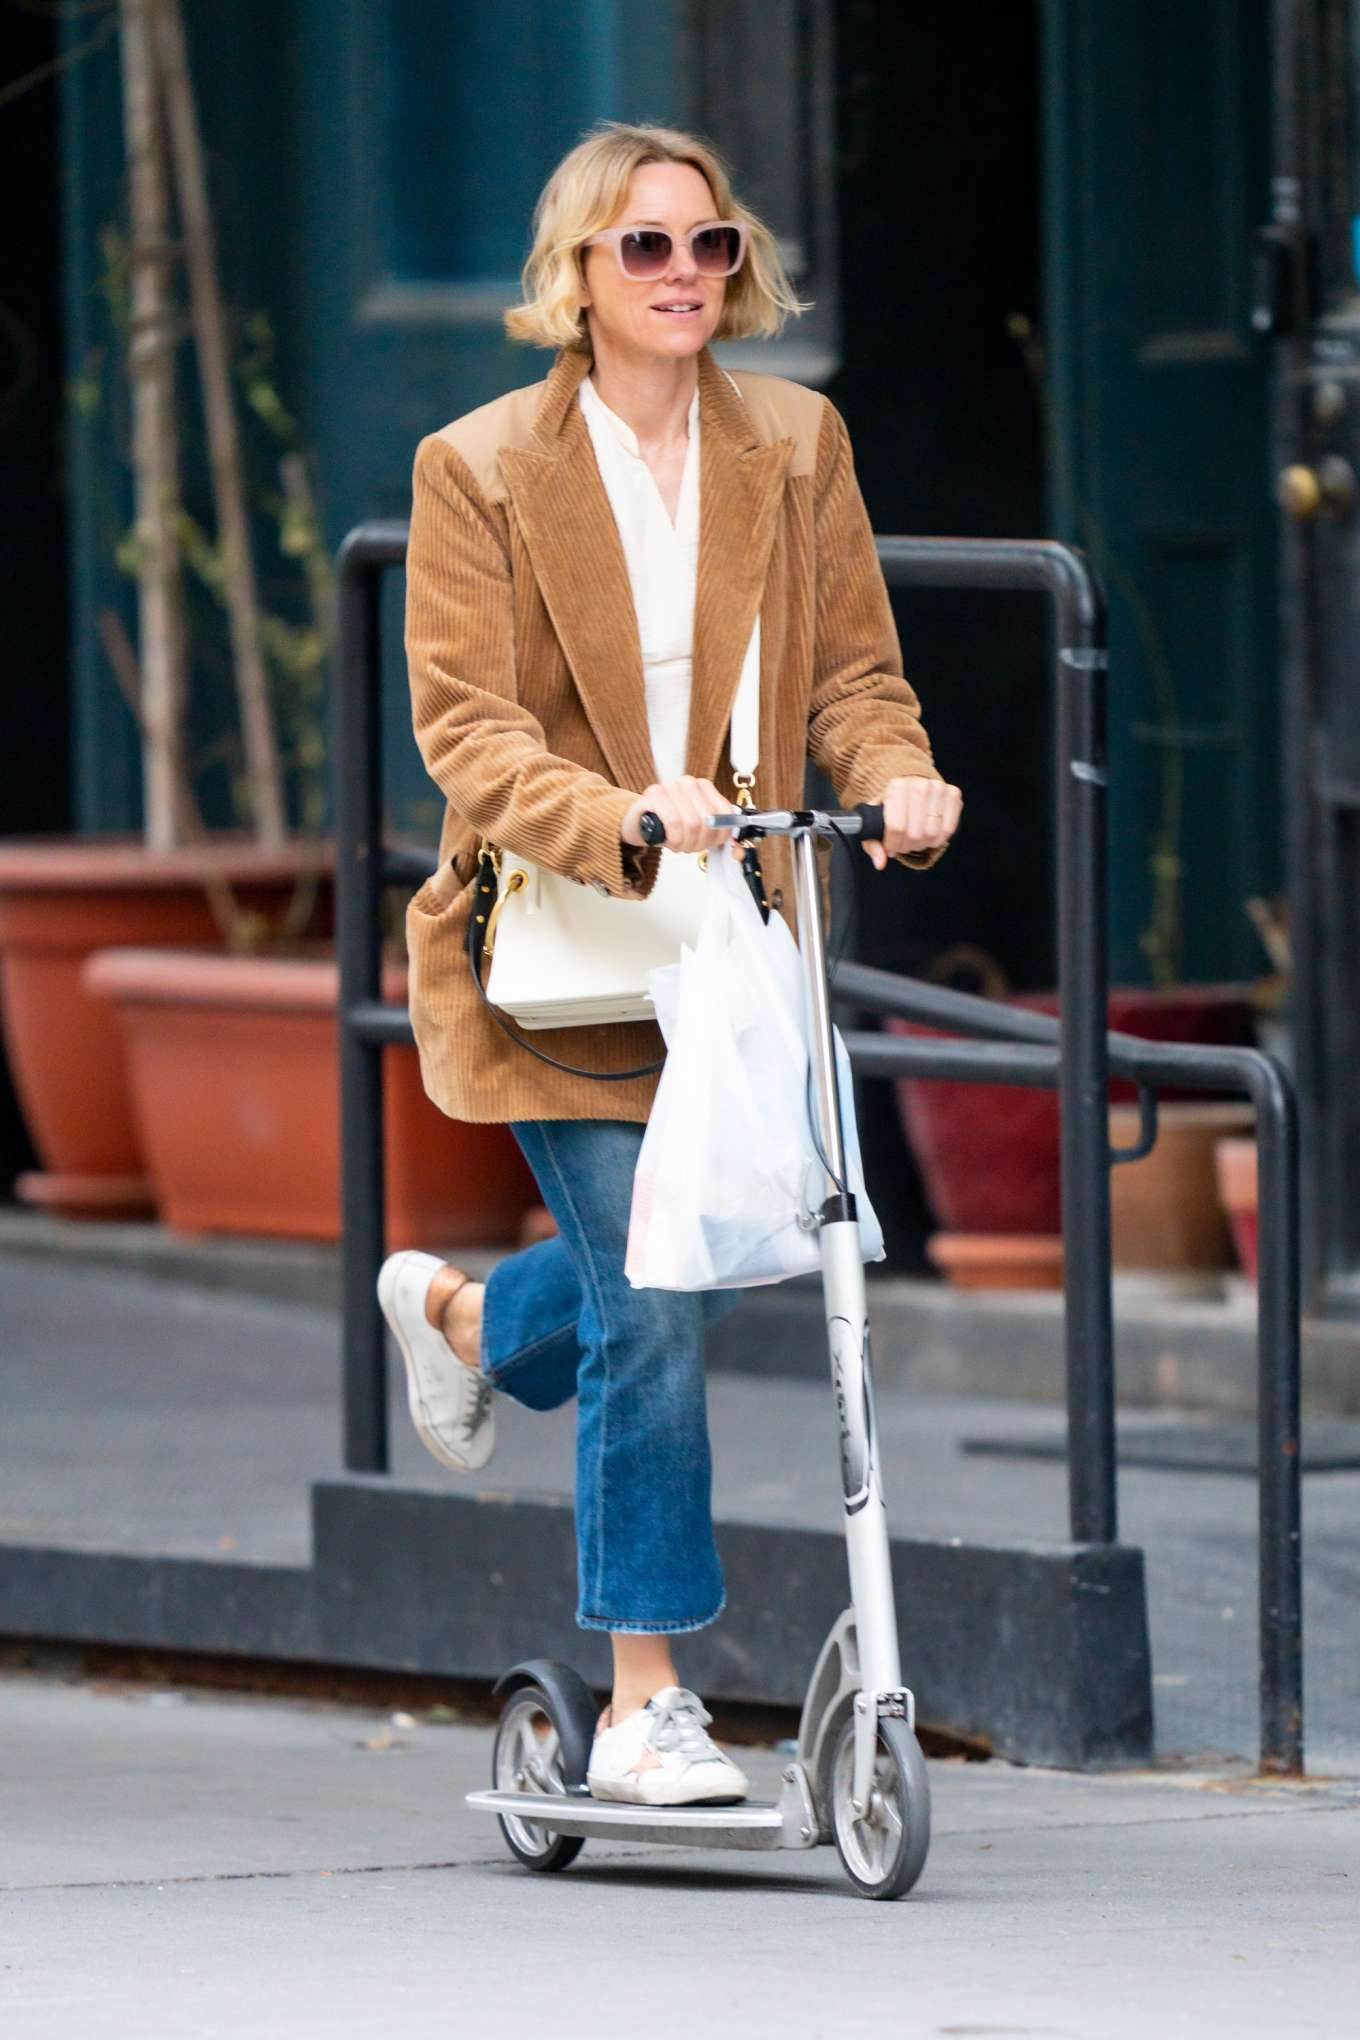 Naomi Watts 2020 : Naomi Watts – Out doing errands on a scooter in New York City-05